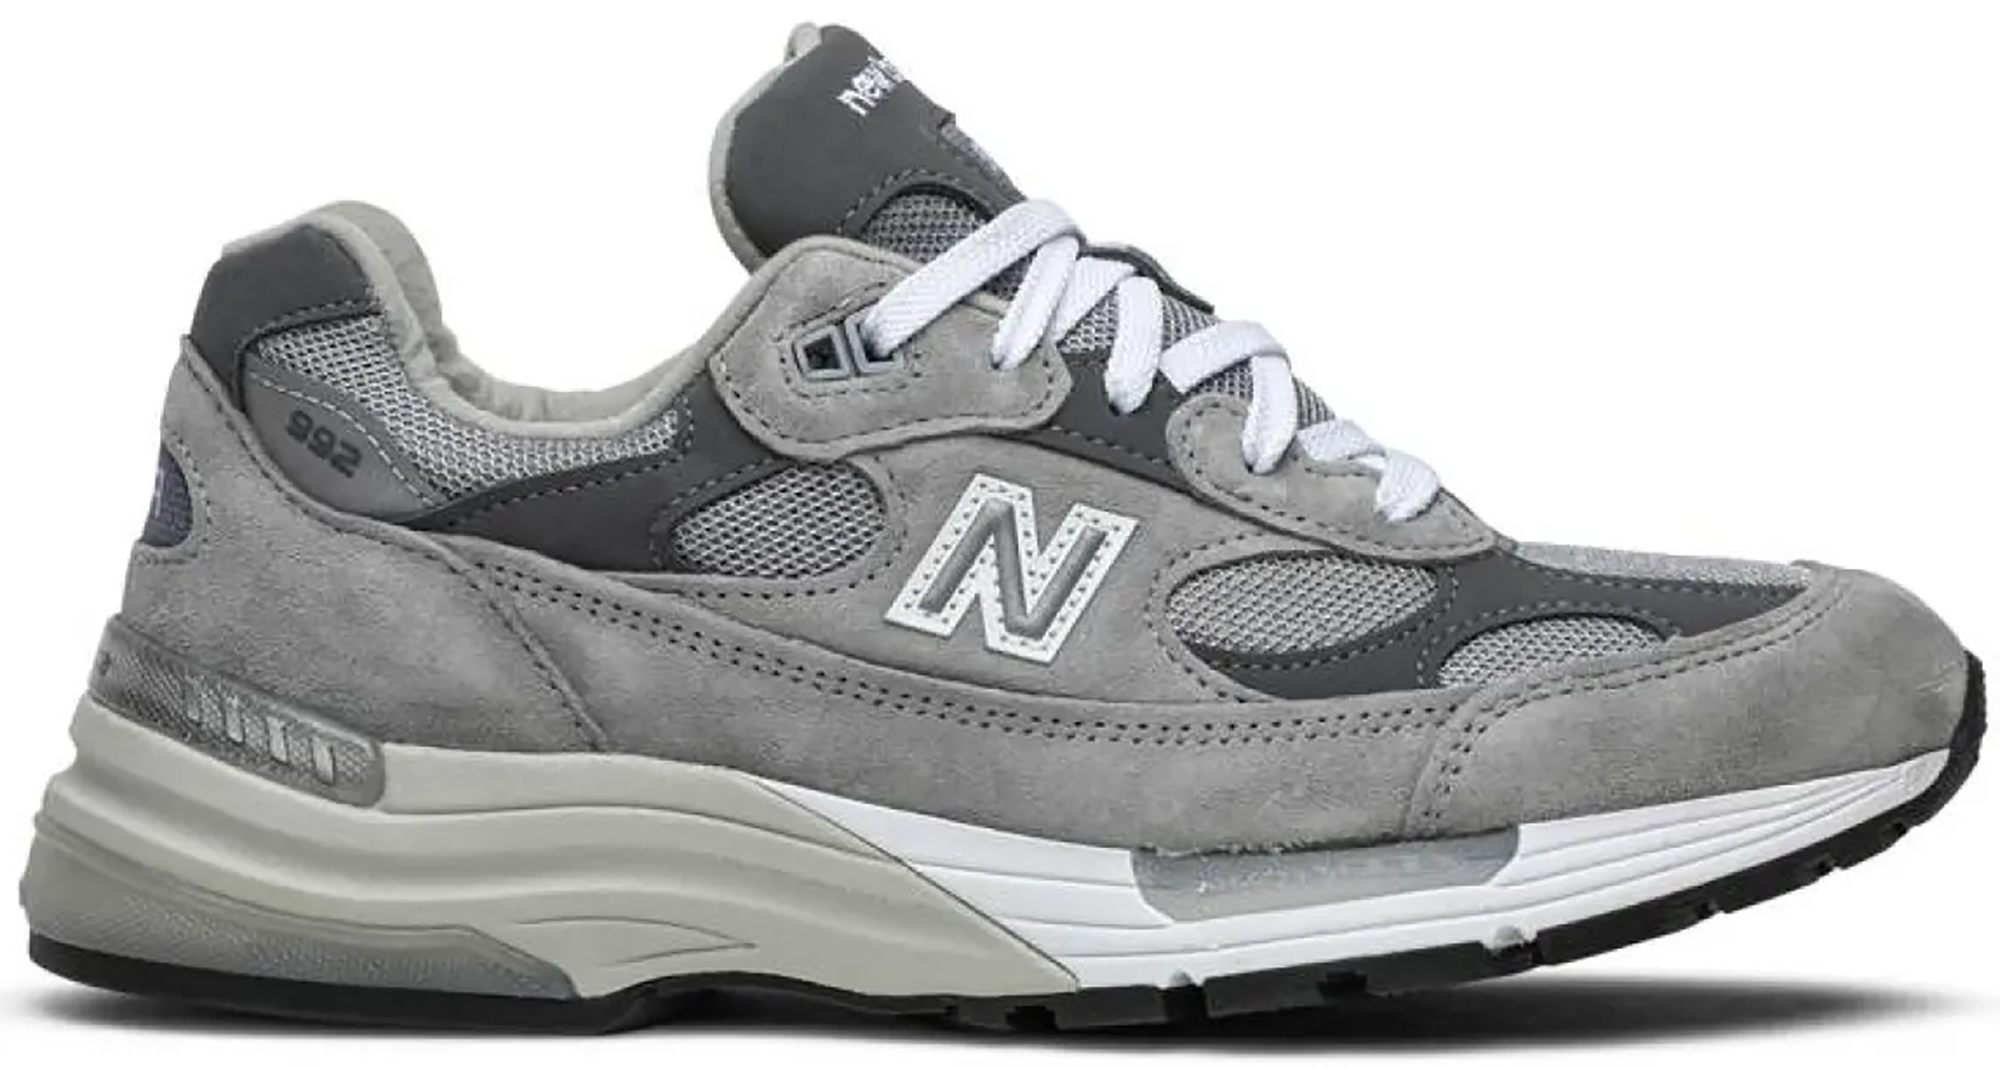 New Balance 992 Grey in 2021 | Grey new balance, Men shoes with ...